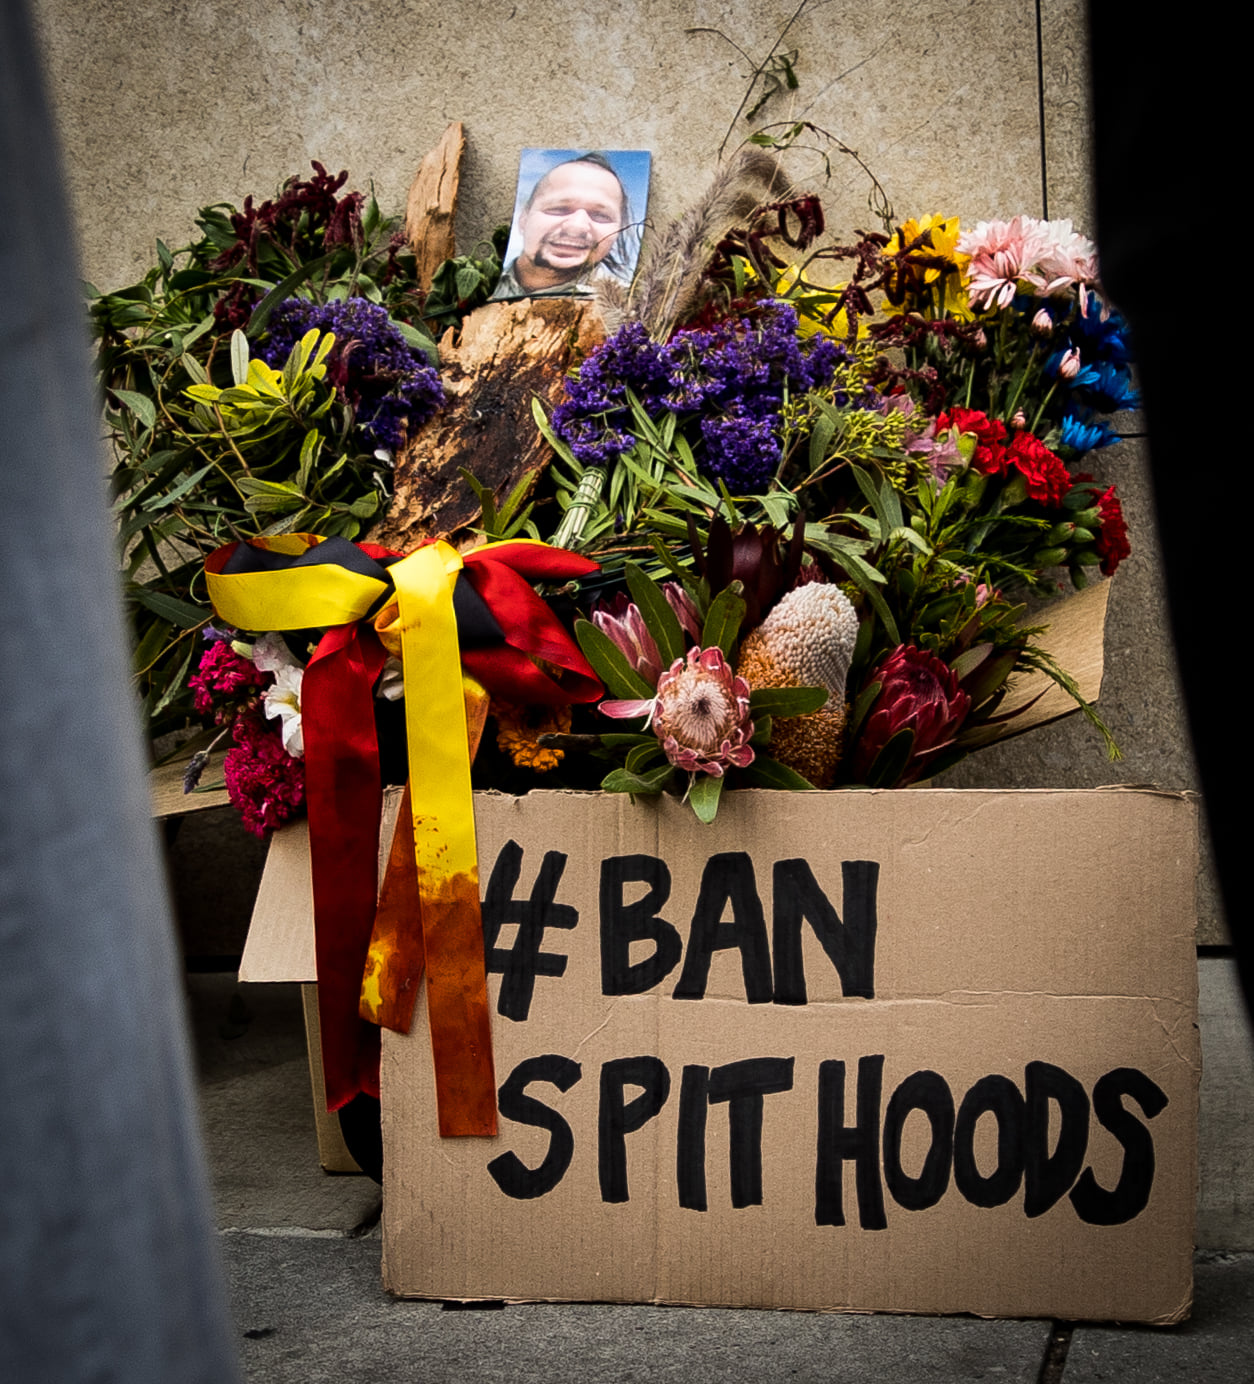 Ban Spithoods placard sits against a box of flowers, with a picture of Wayne Fella Morrison